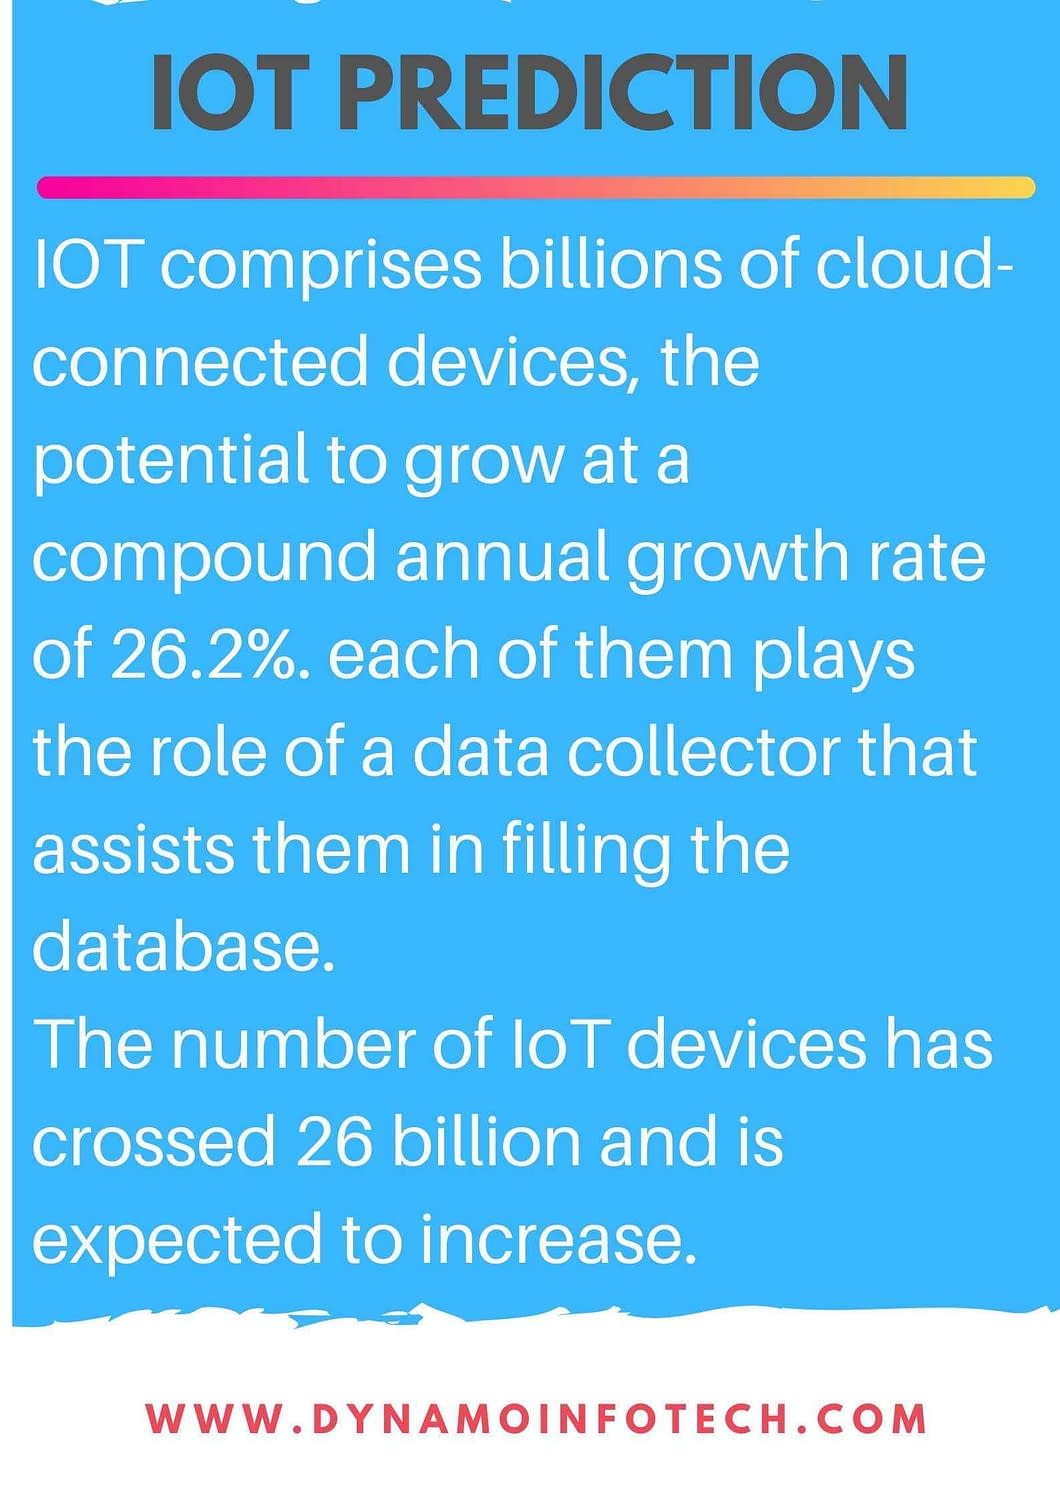 Iot technological prediction for the year 2020